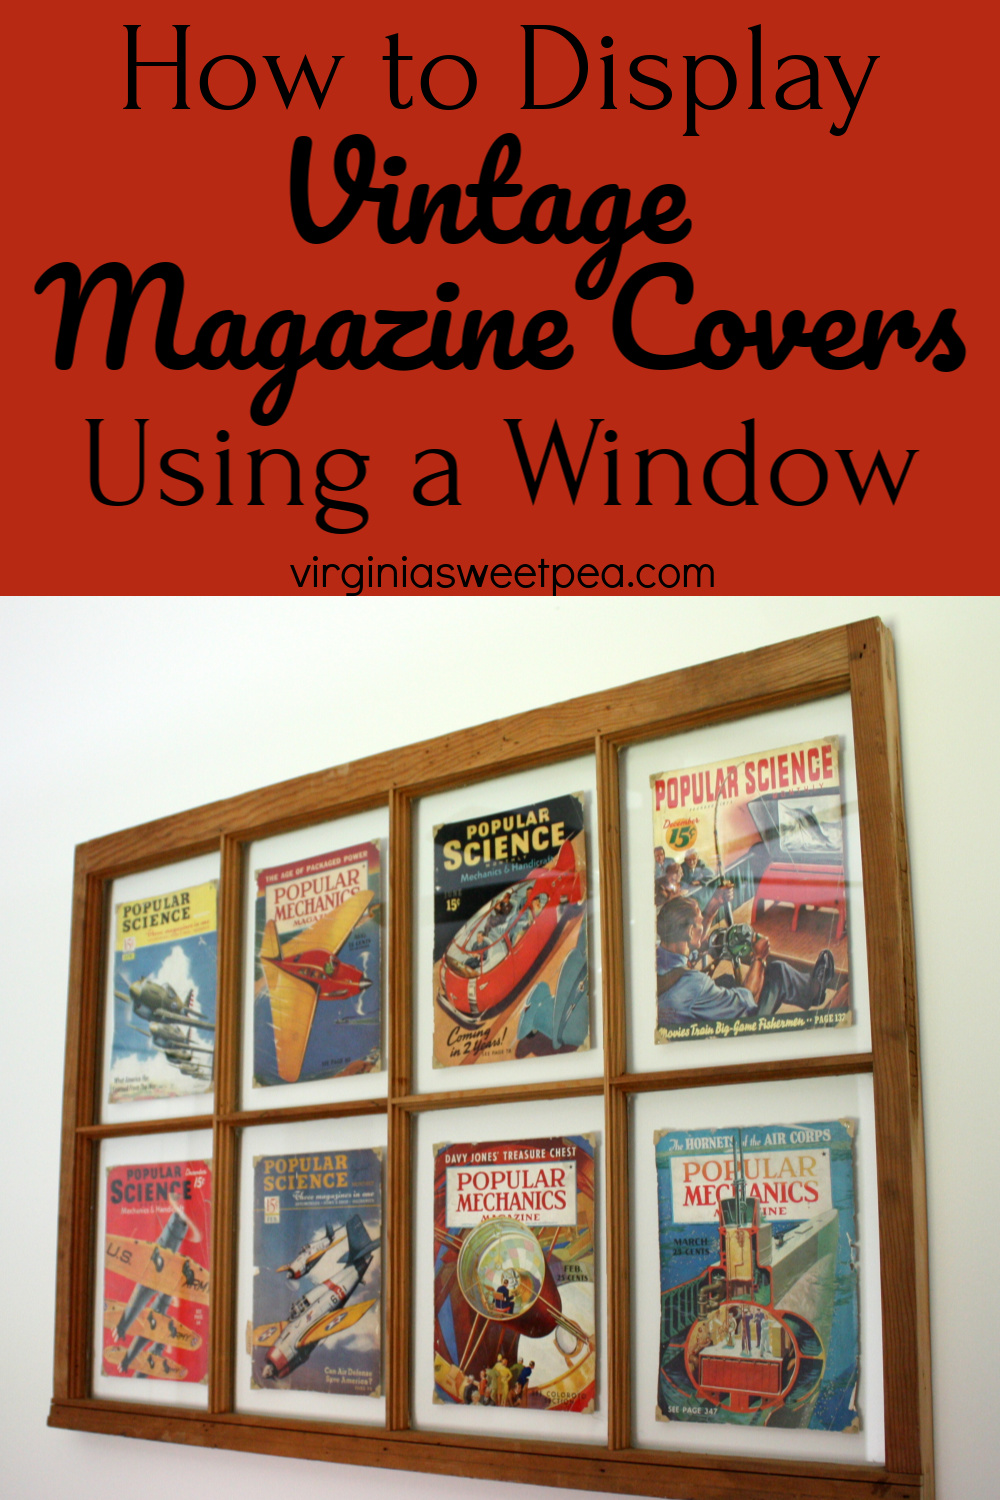 How to Display Vintage Magazine Covers in a Window - Learn how to display magazine covers using an old window.  #upcycledproject #vintagepopularmechanics #vintagepopularscience #popularmechanicsmagazine #popularsciencemagazine via @spaula